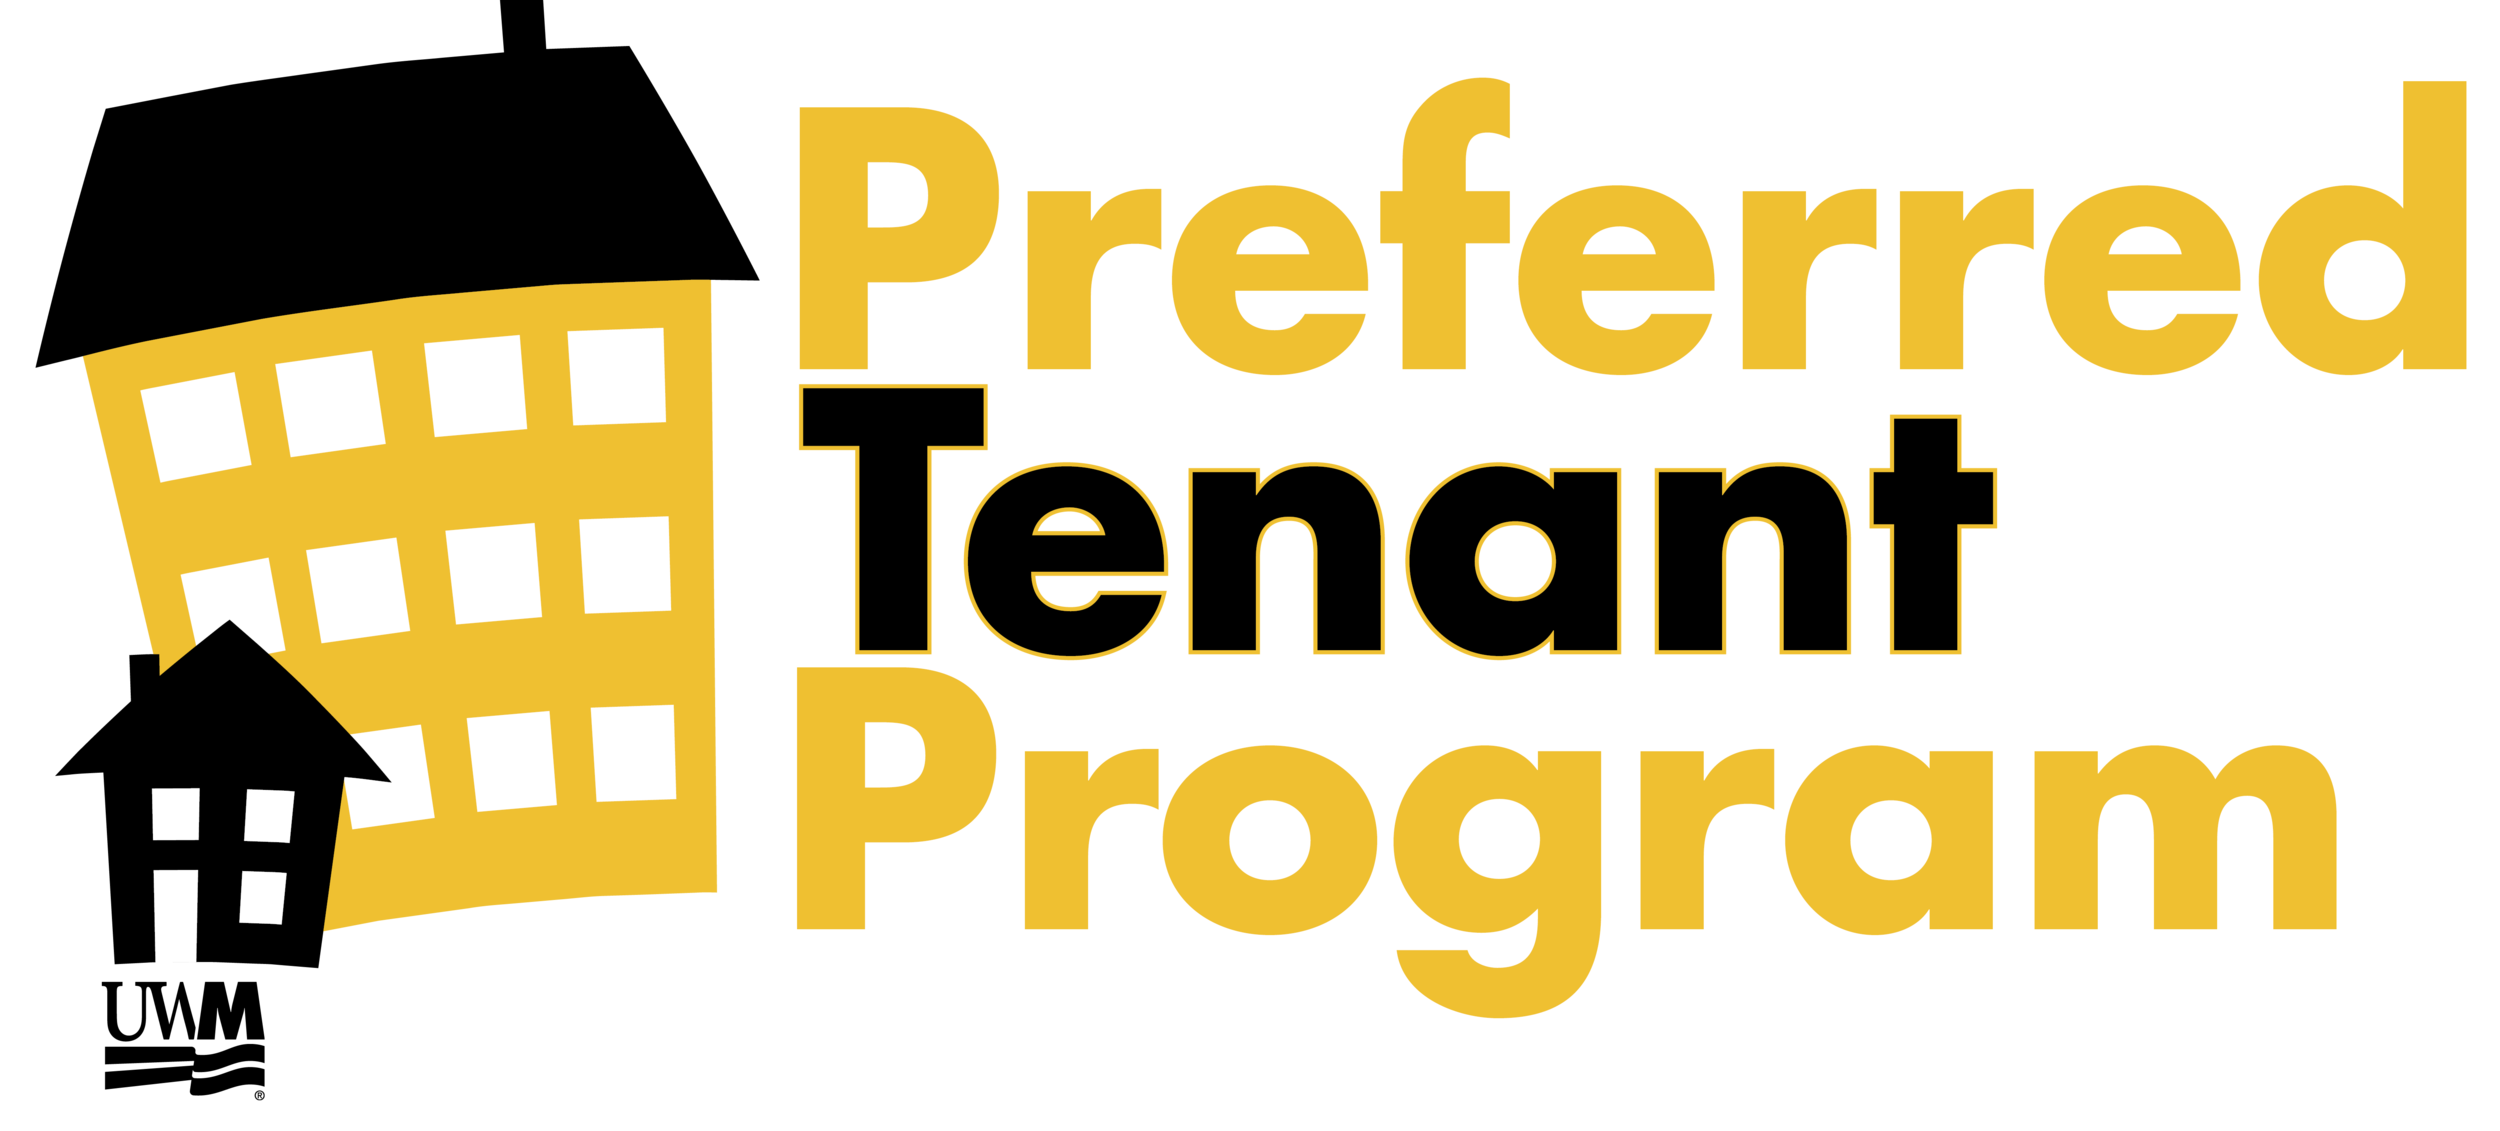 Preferred-Tenant-Good-Neighbor2-e1555438328217.png